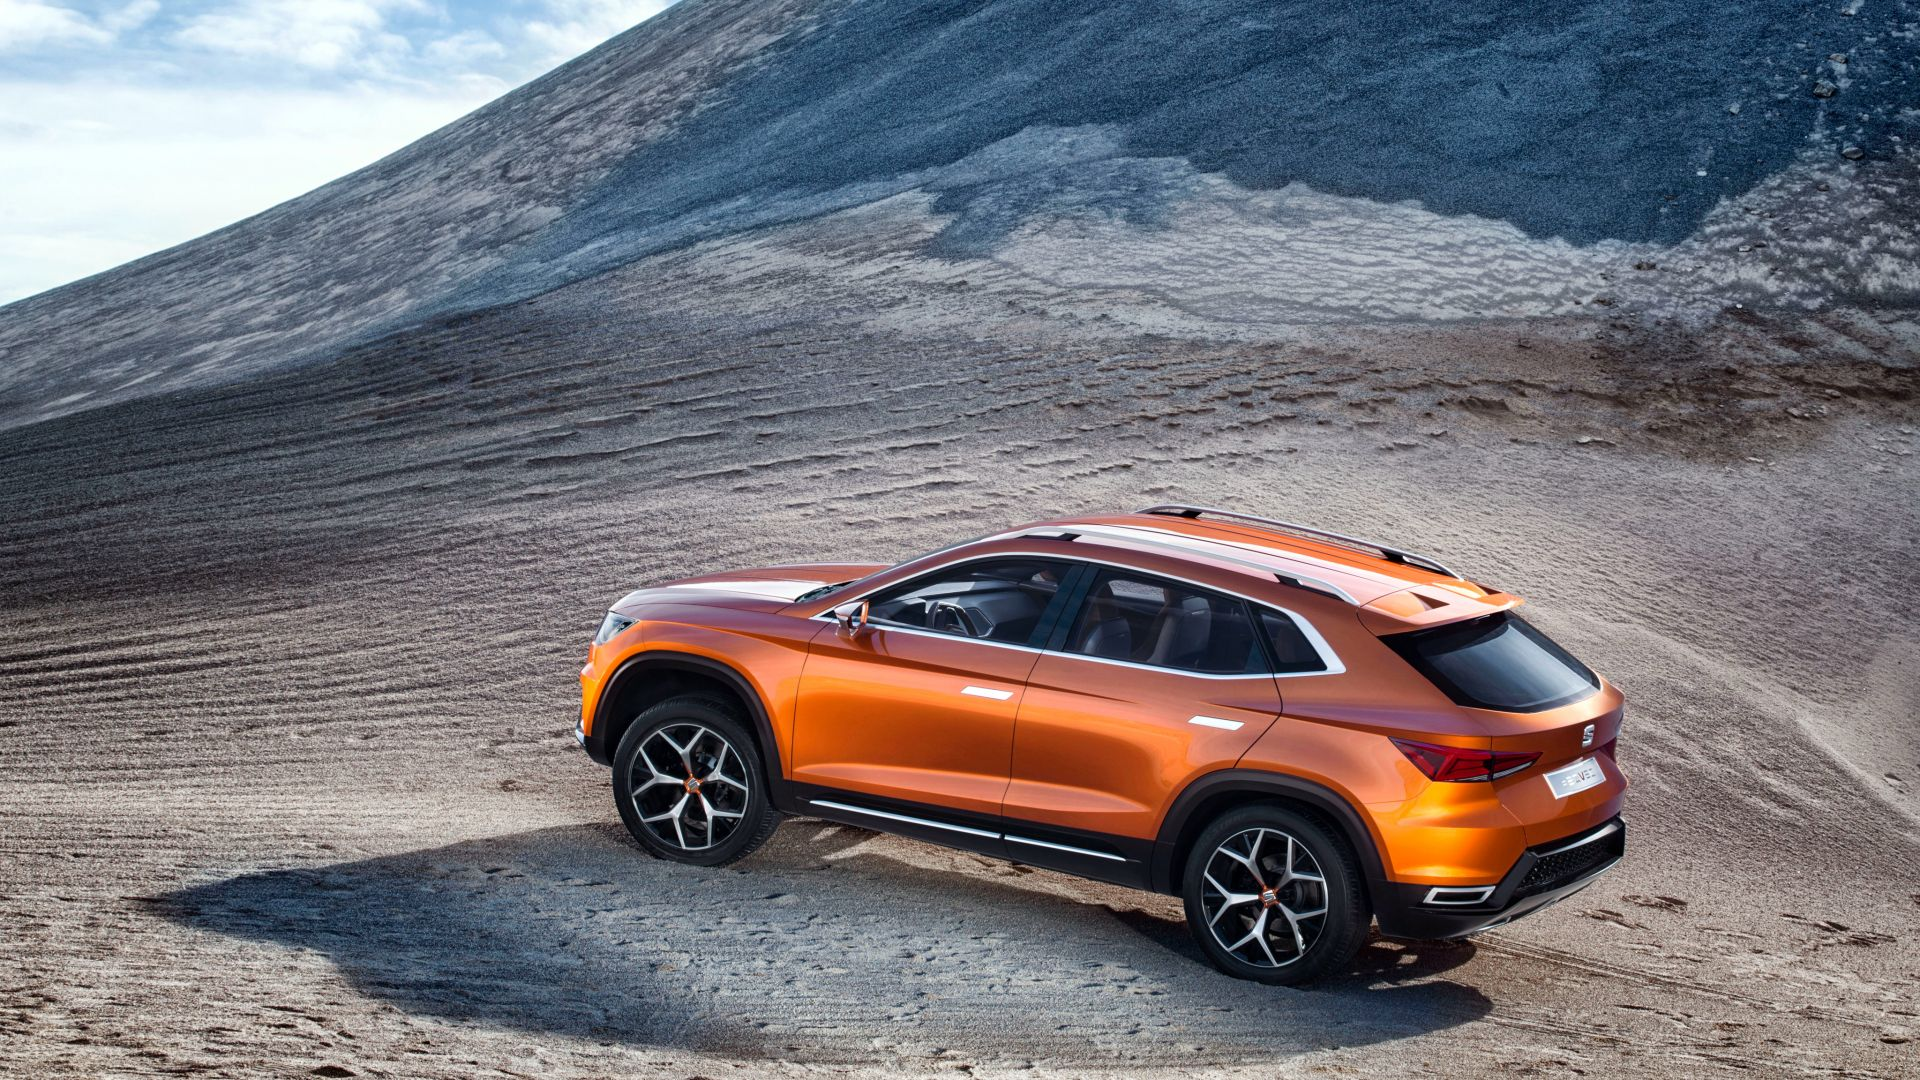 SEAT 20V20, concept, crossover, orange, mountains. (horizontal)